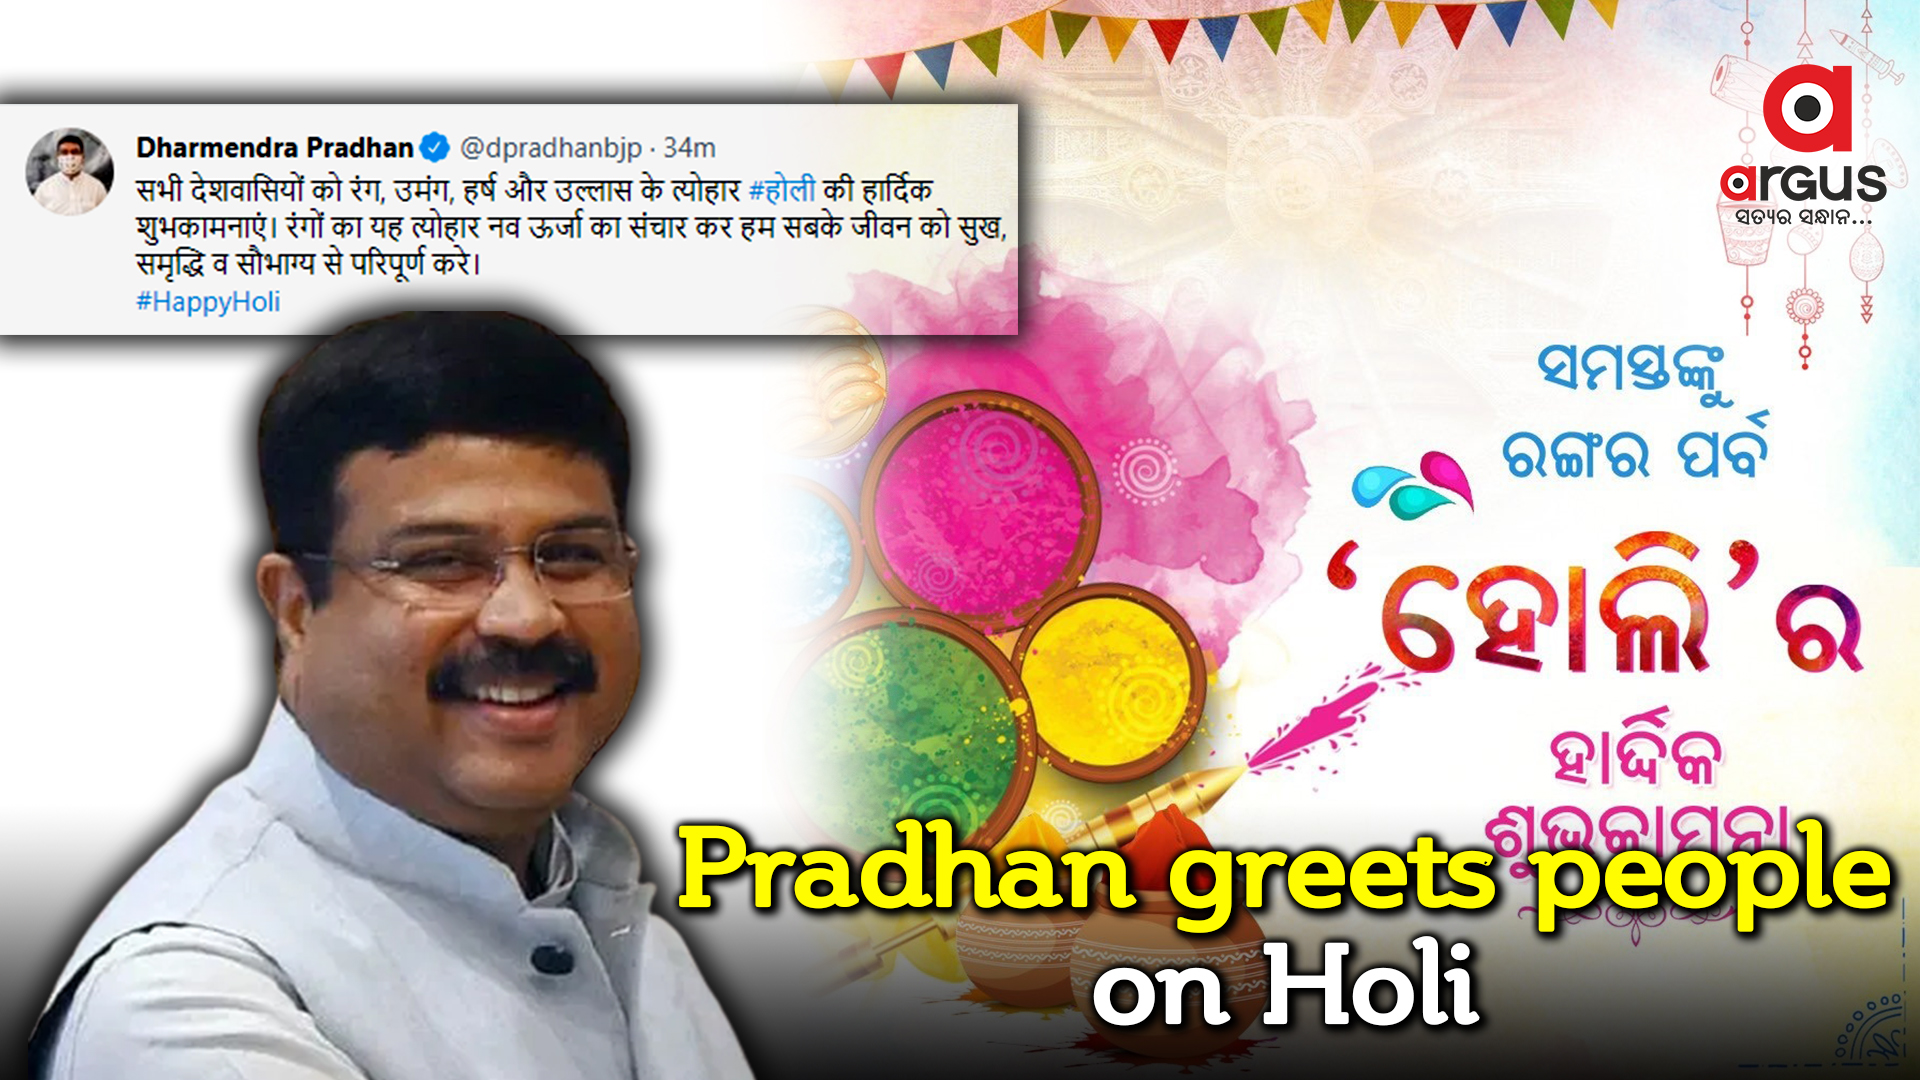 Union Minister Dharmendra Pradhan greets people on Holi